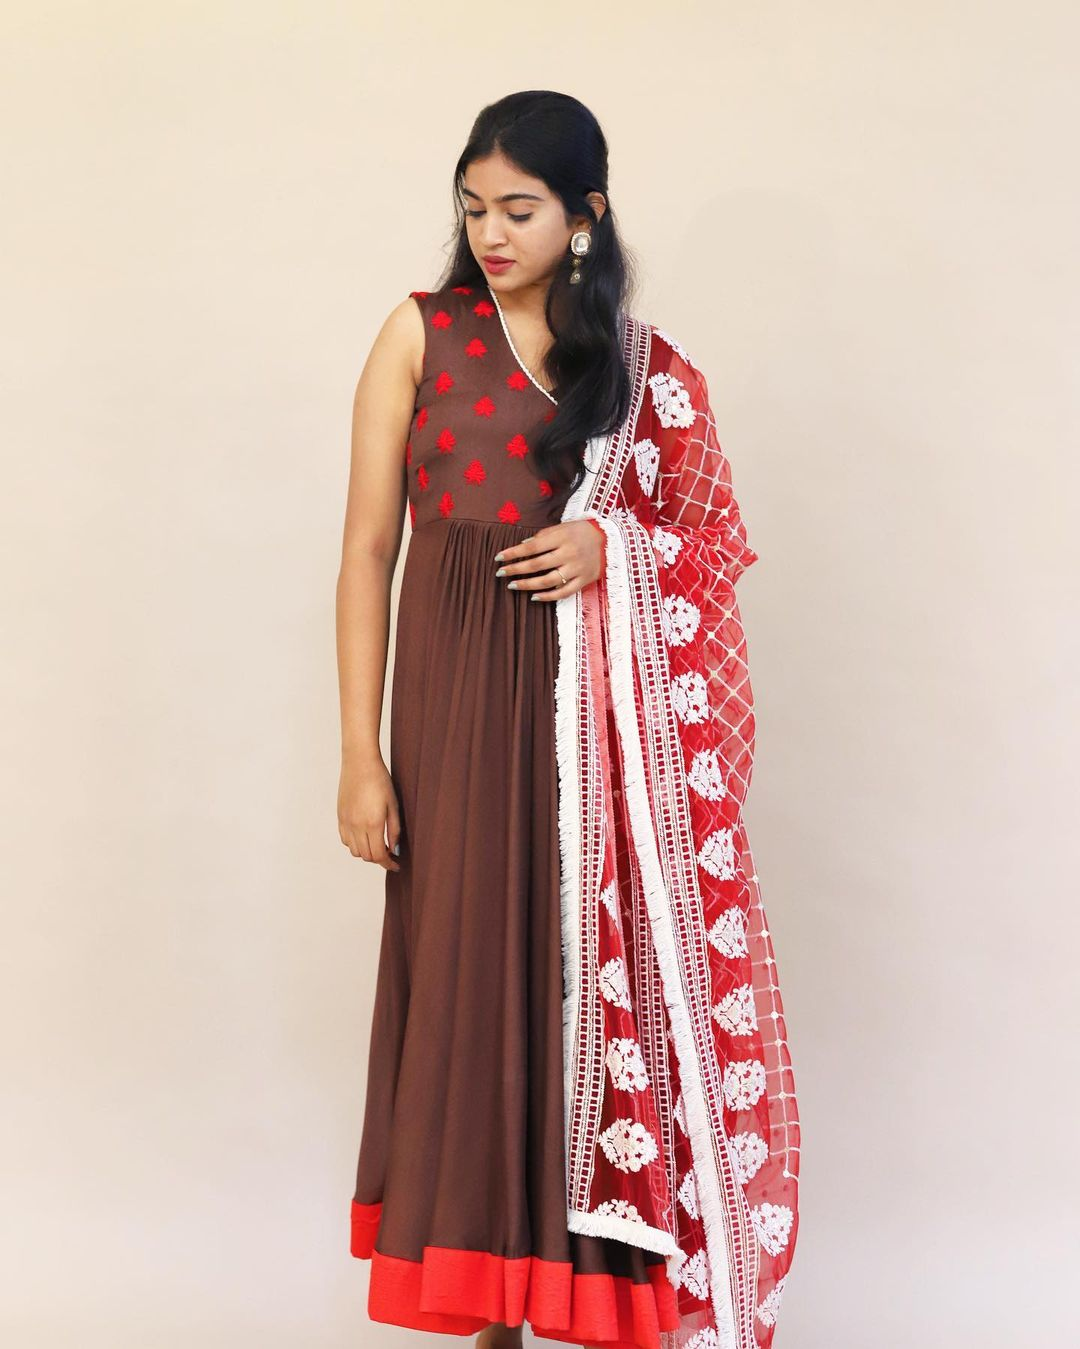 Brown-red affair. Beautiful brown and red color combination long frock.   2021-08-29